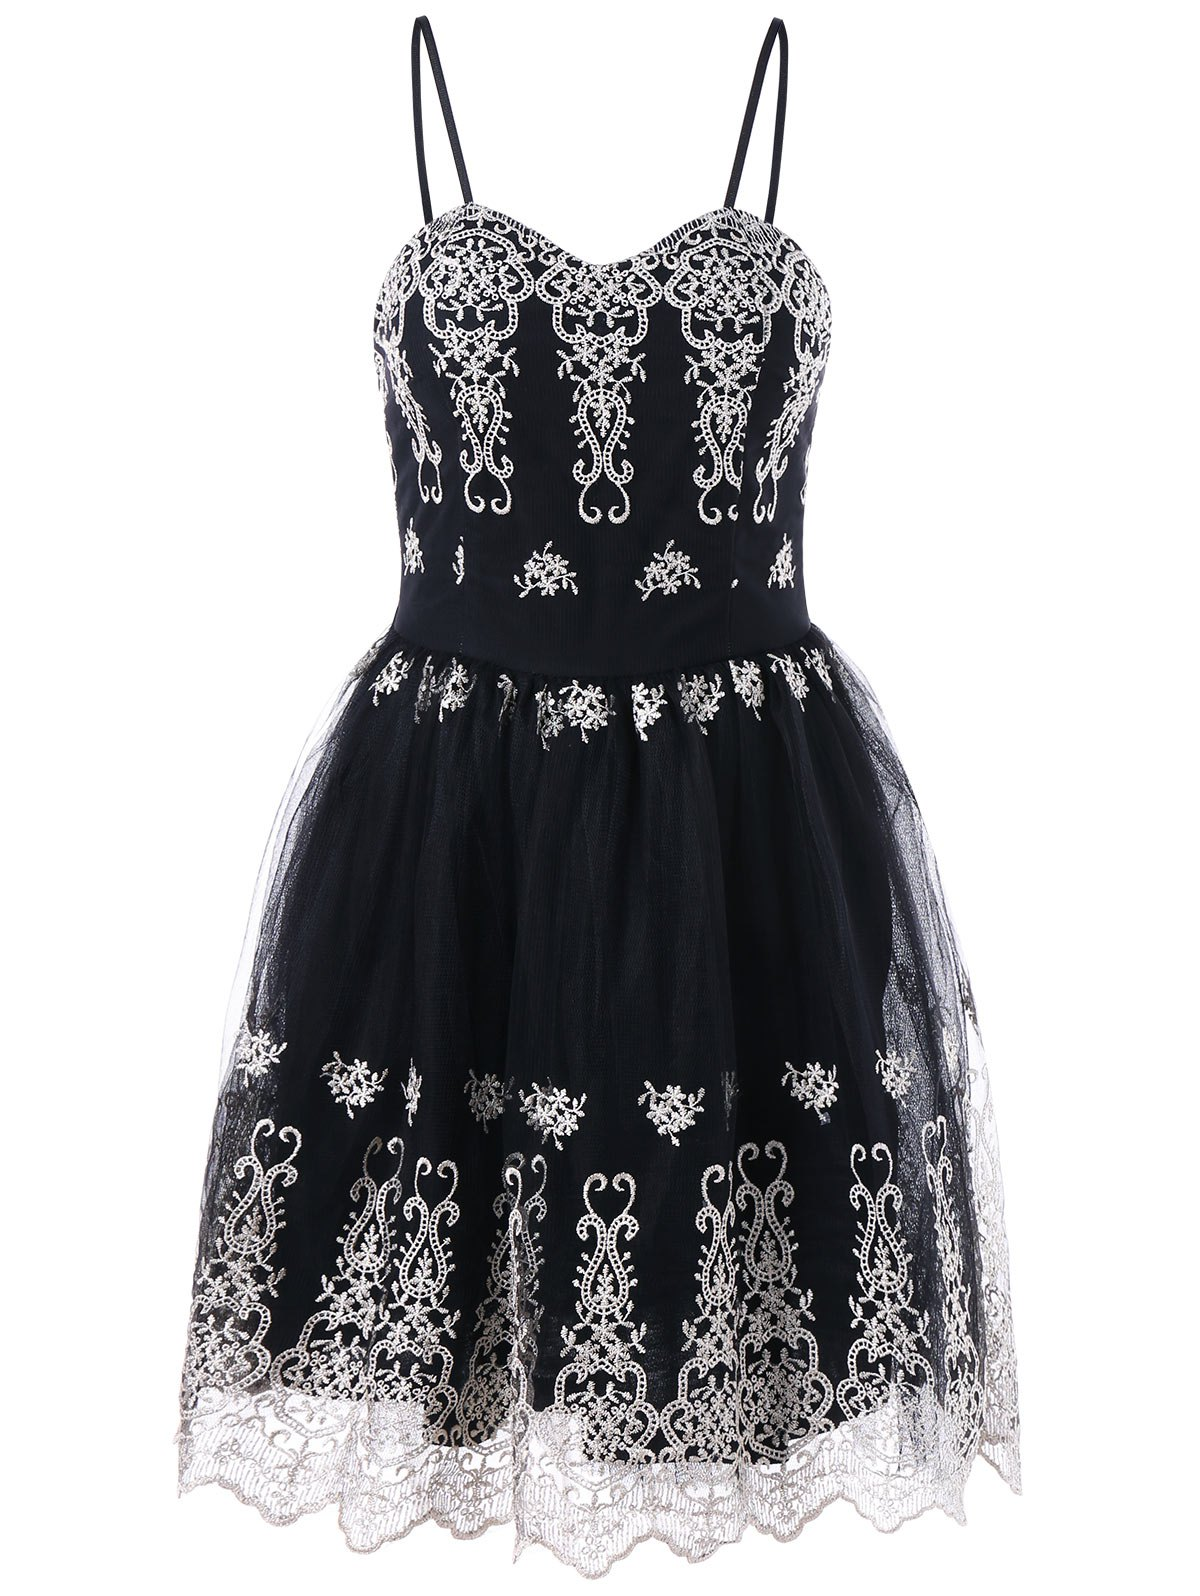 Spaghetti Strap Embroidered Mini Party Cocktail Dress - BLACK 2XL